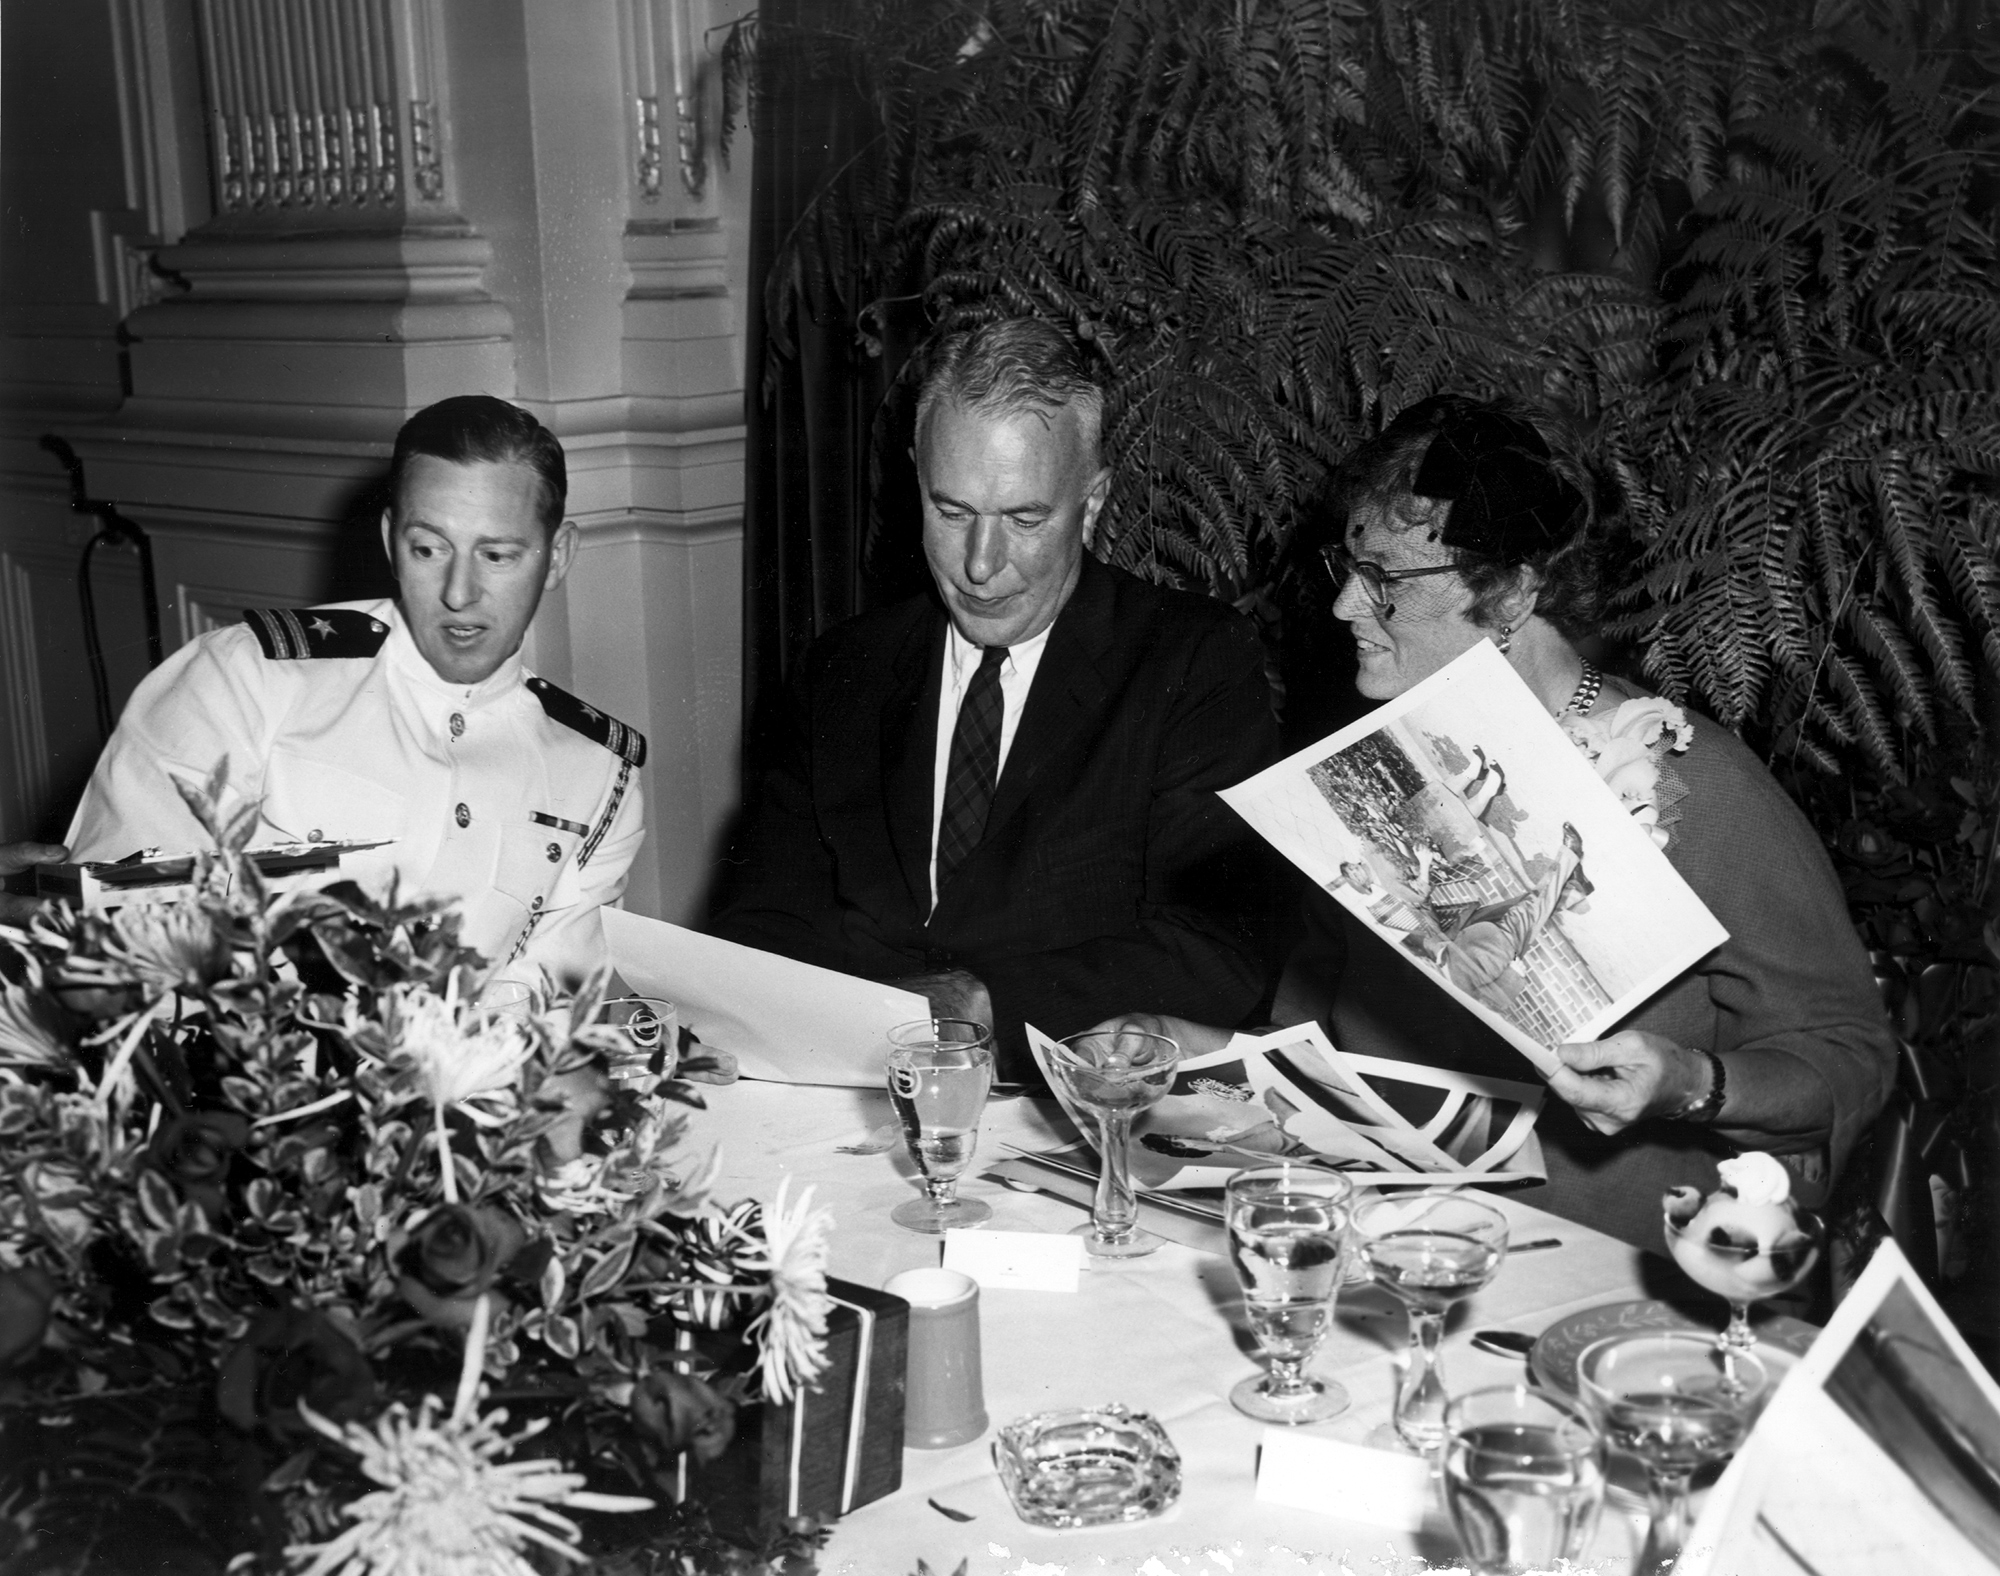 Columbus Iselin, Mary Sears and unidentified man (left) in uniform looking at photos. (Photo courtesy of WHOI Archives)